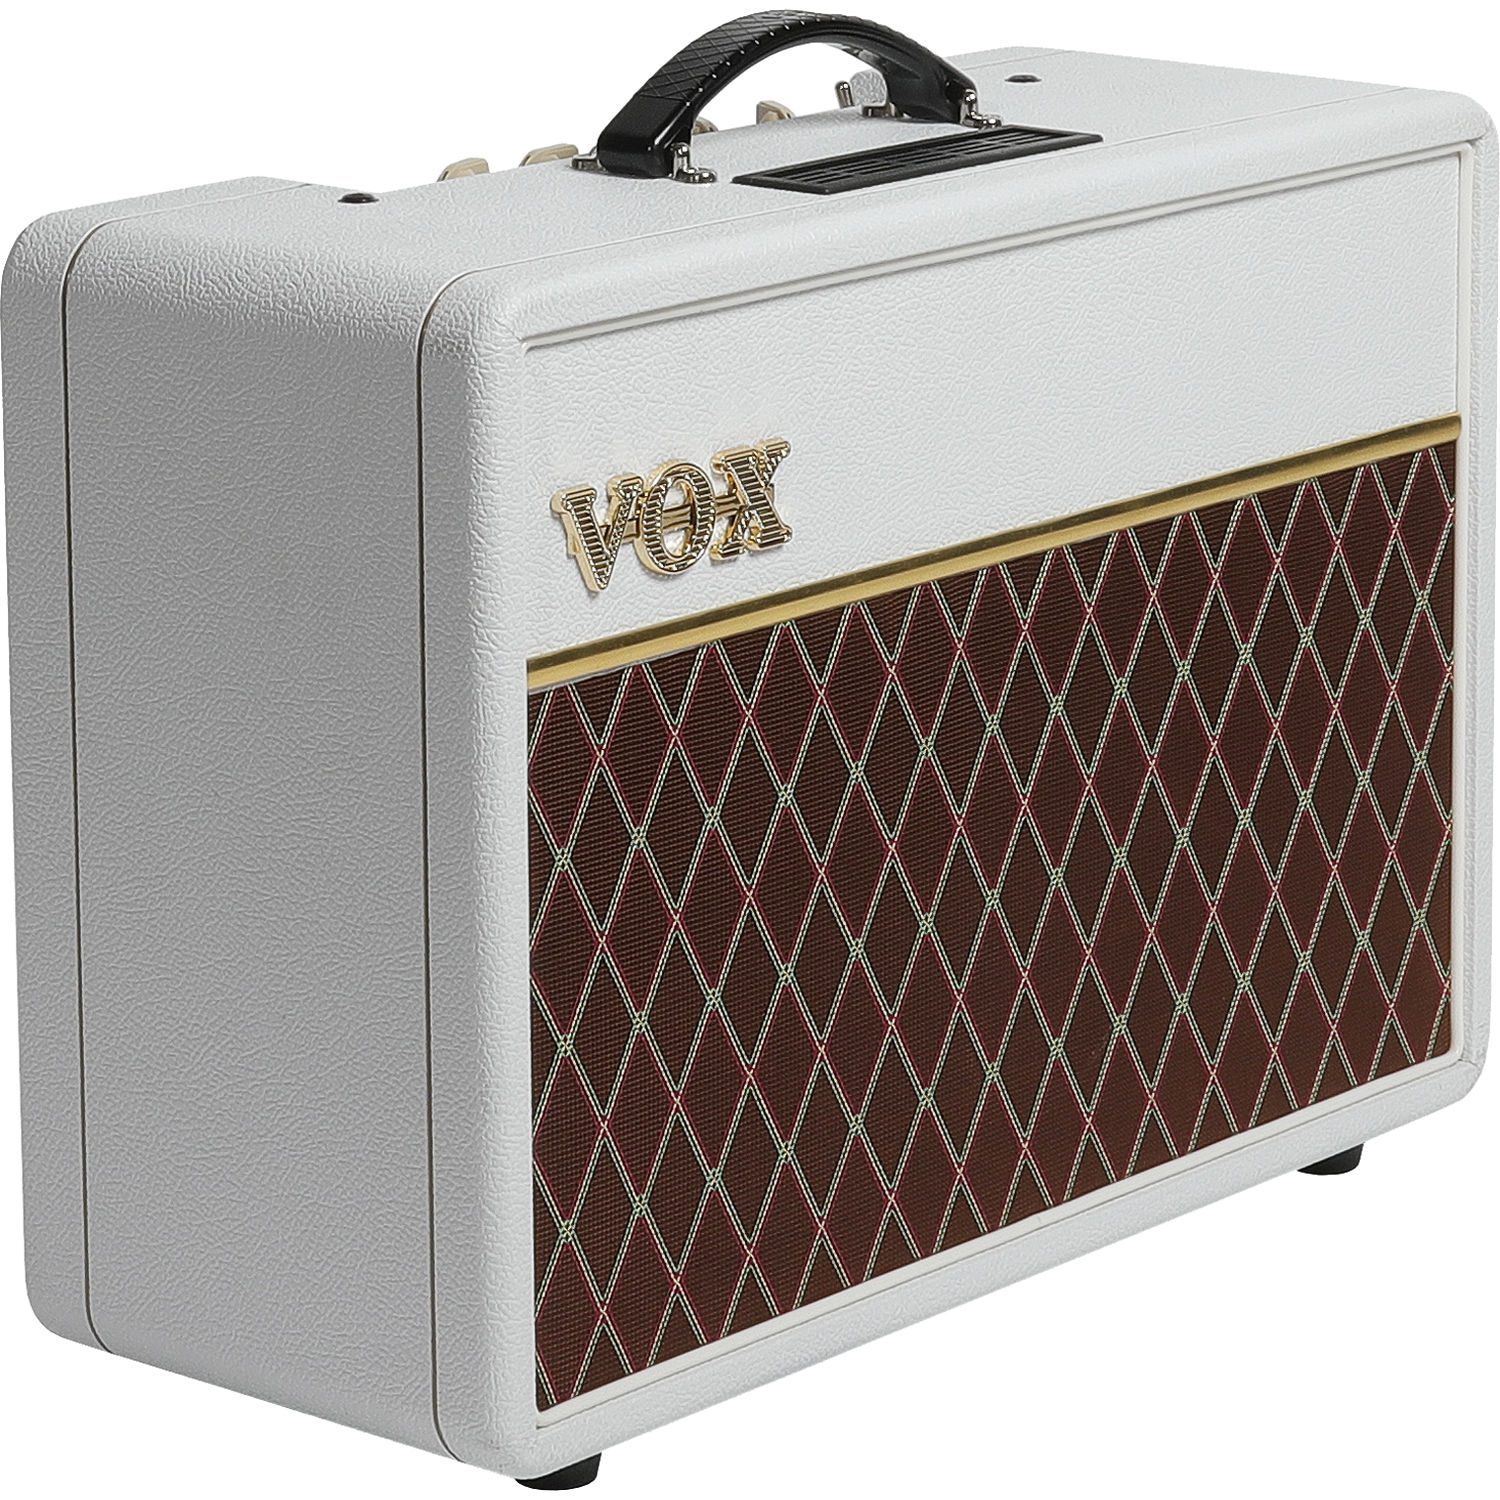 vox ac10c1 custom limited edition 10w tube combo ac10c1wb b h. Black Bedroom Furniture Sets. Home Design Ideas